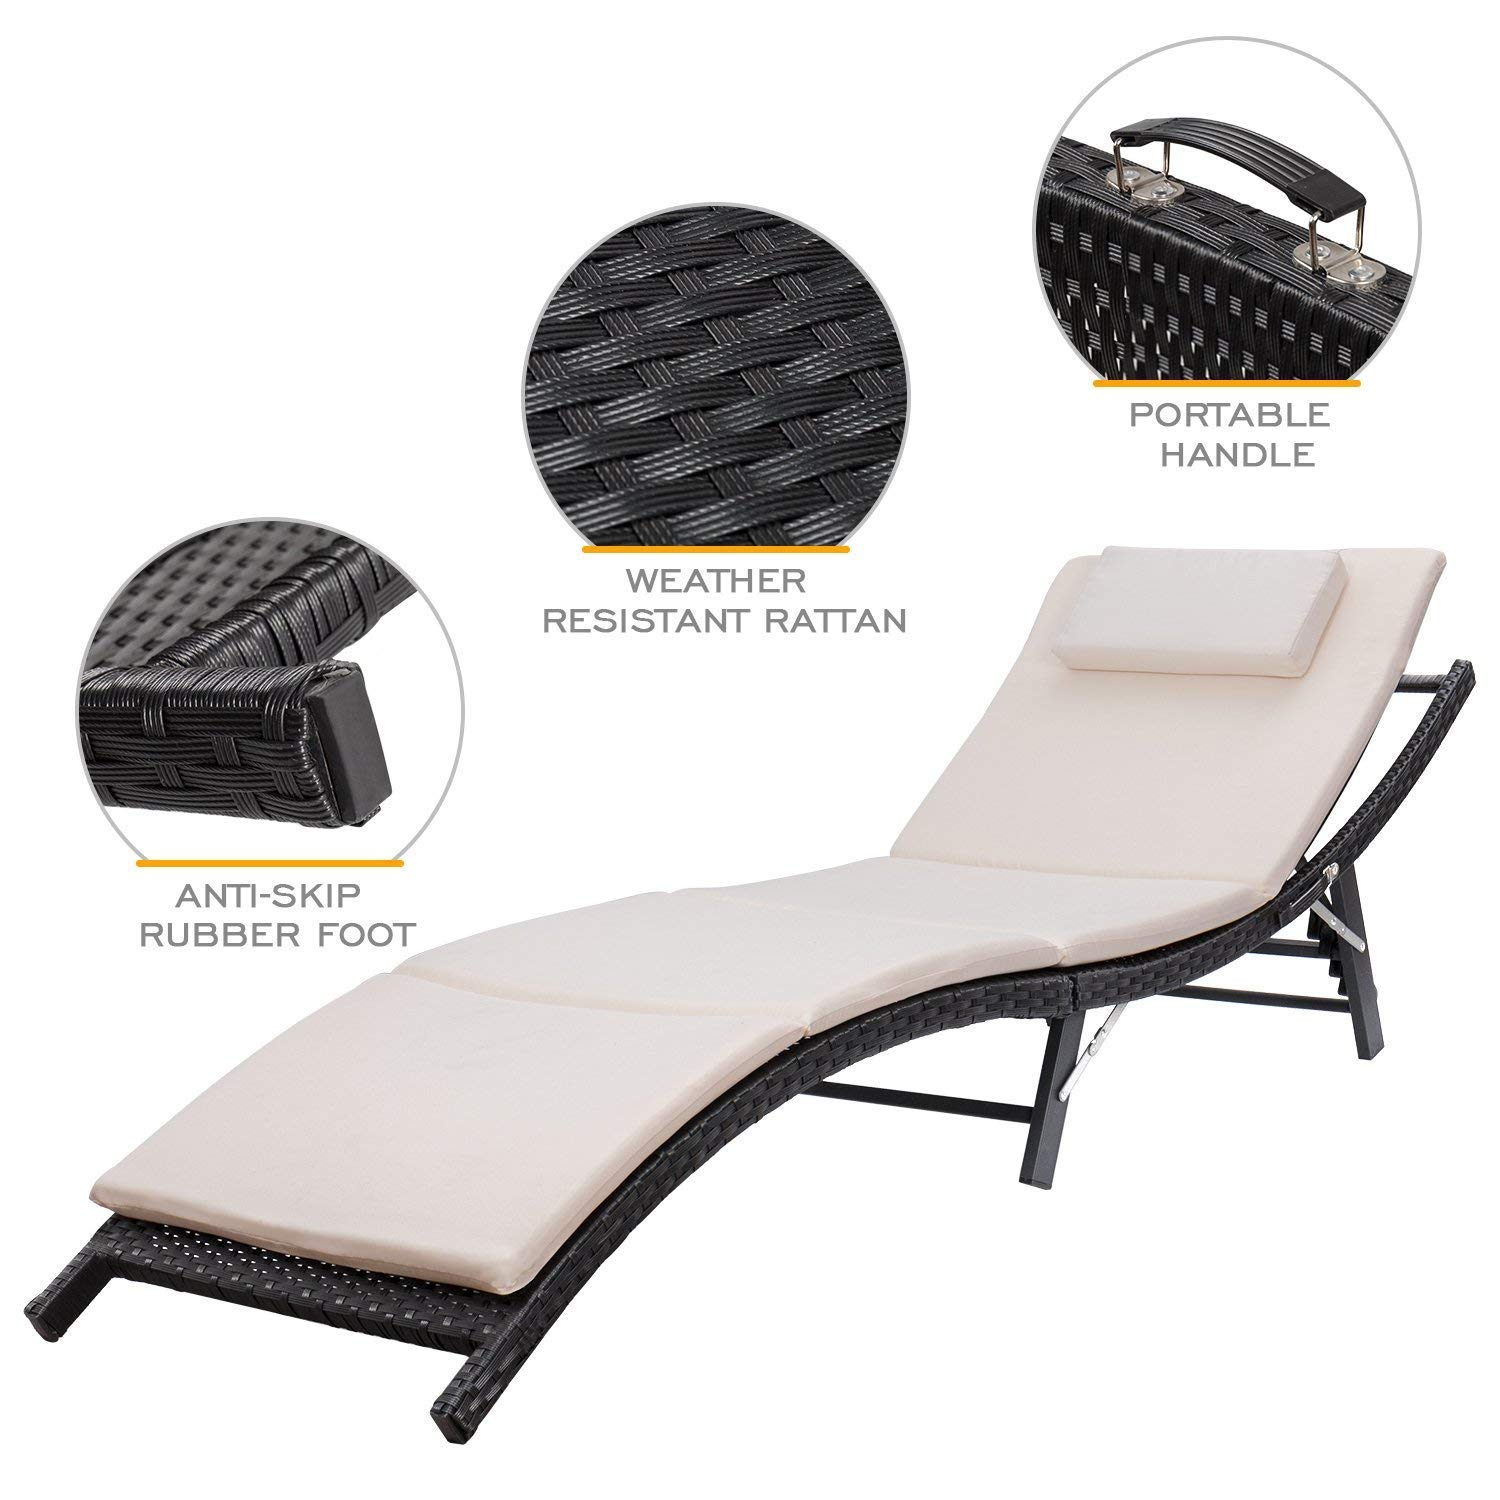 Homall Patio Lounge Chair Outdoor Adjustable Chaise Lounge Chair Patio Poolside Furniture Set Portable and Folding PE Rattan Furniture Adjustable 1 PE Rattan